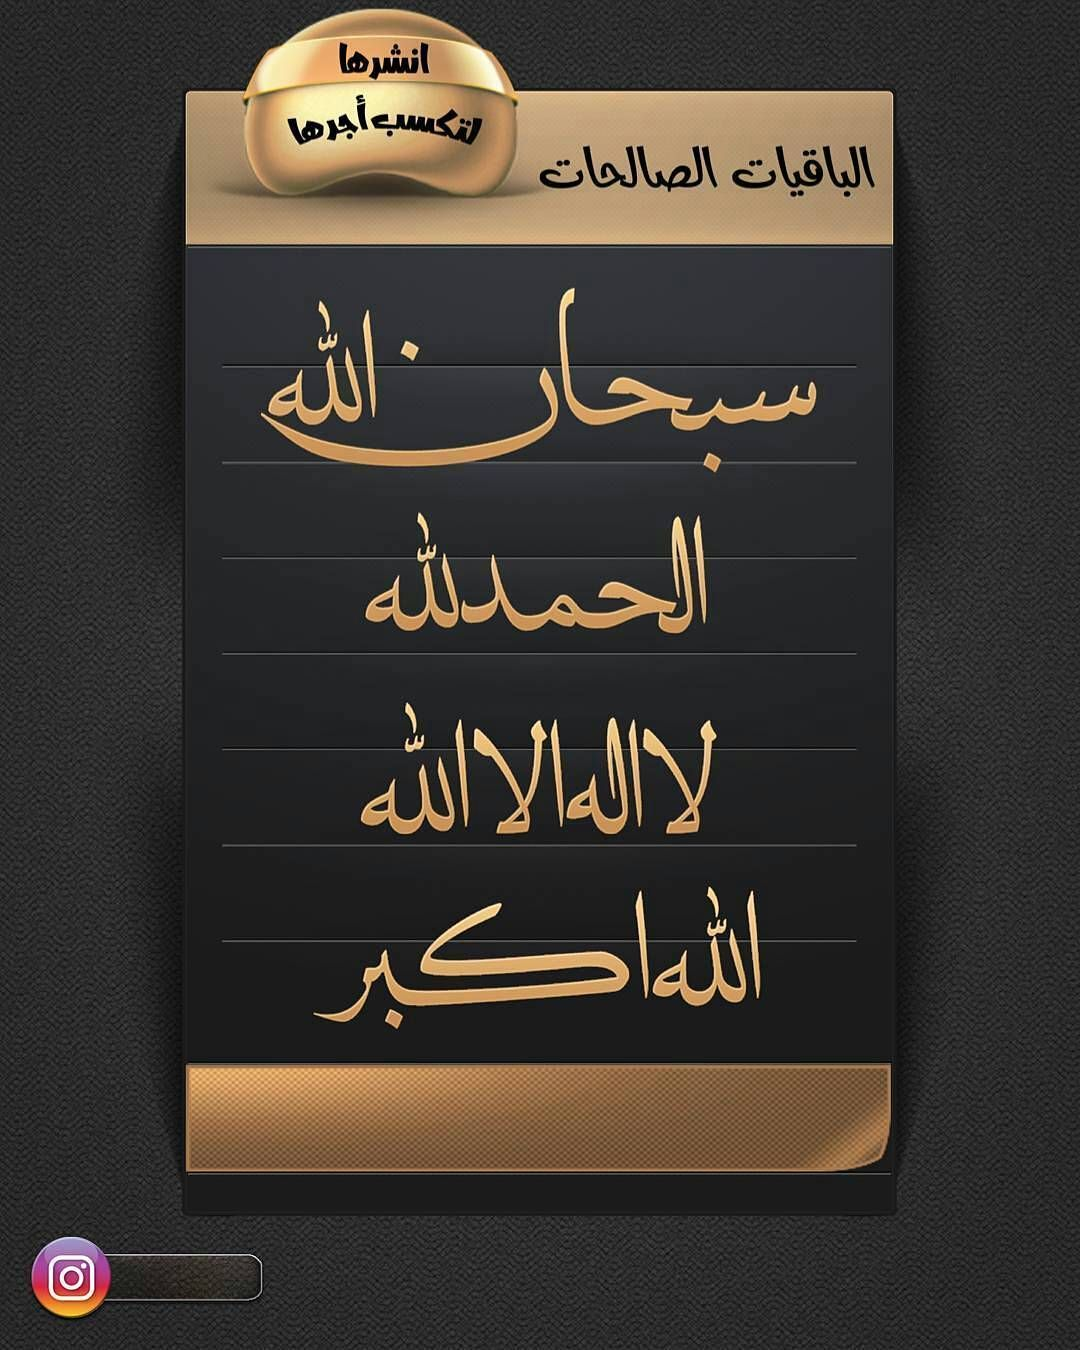 Remembrance Of Allah Quran Quotes Inspirational Islamic Calligraphy Islamic Quotes